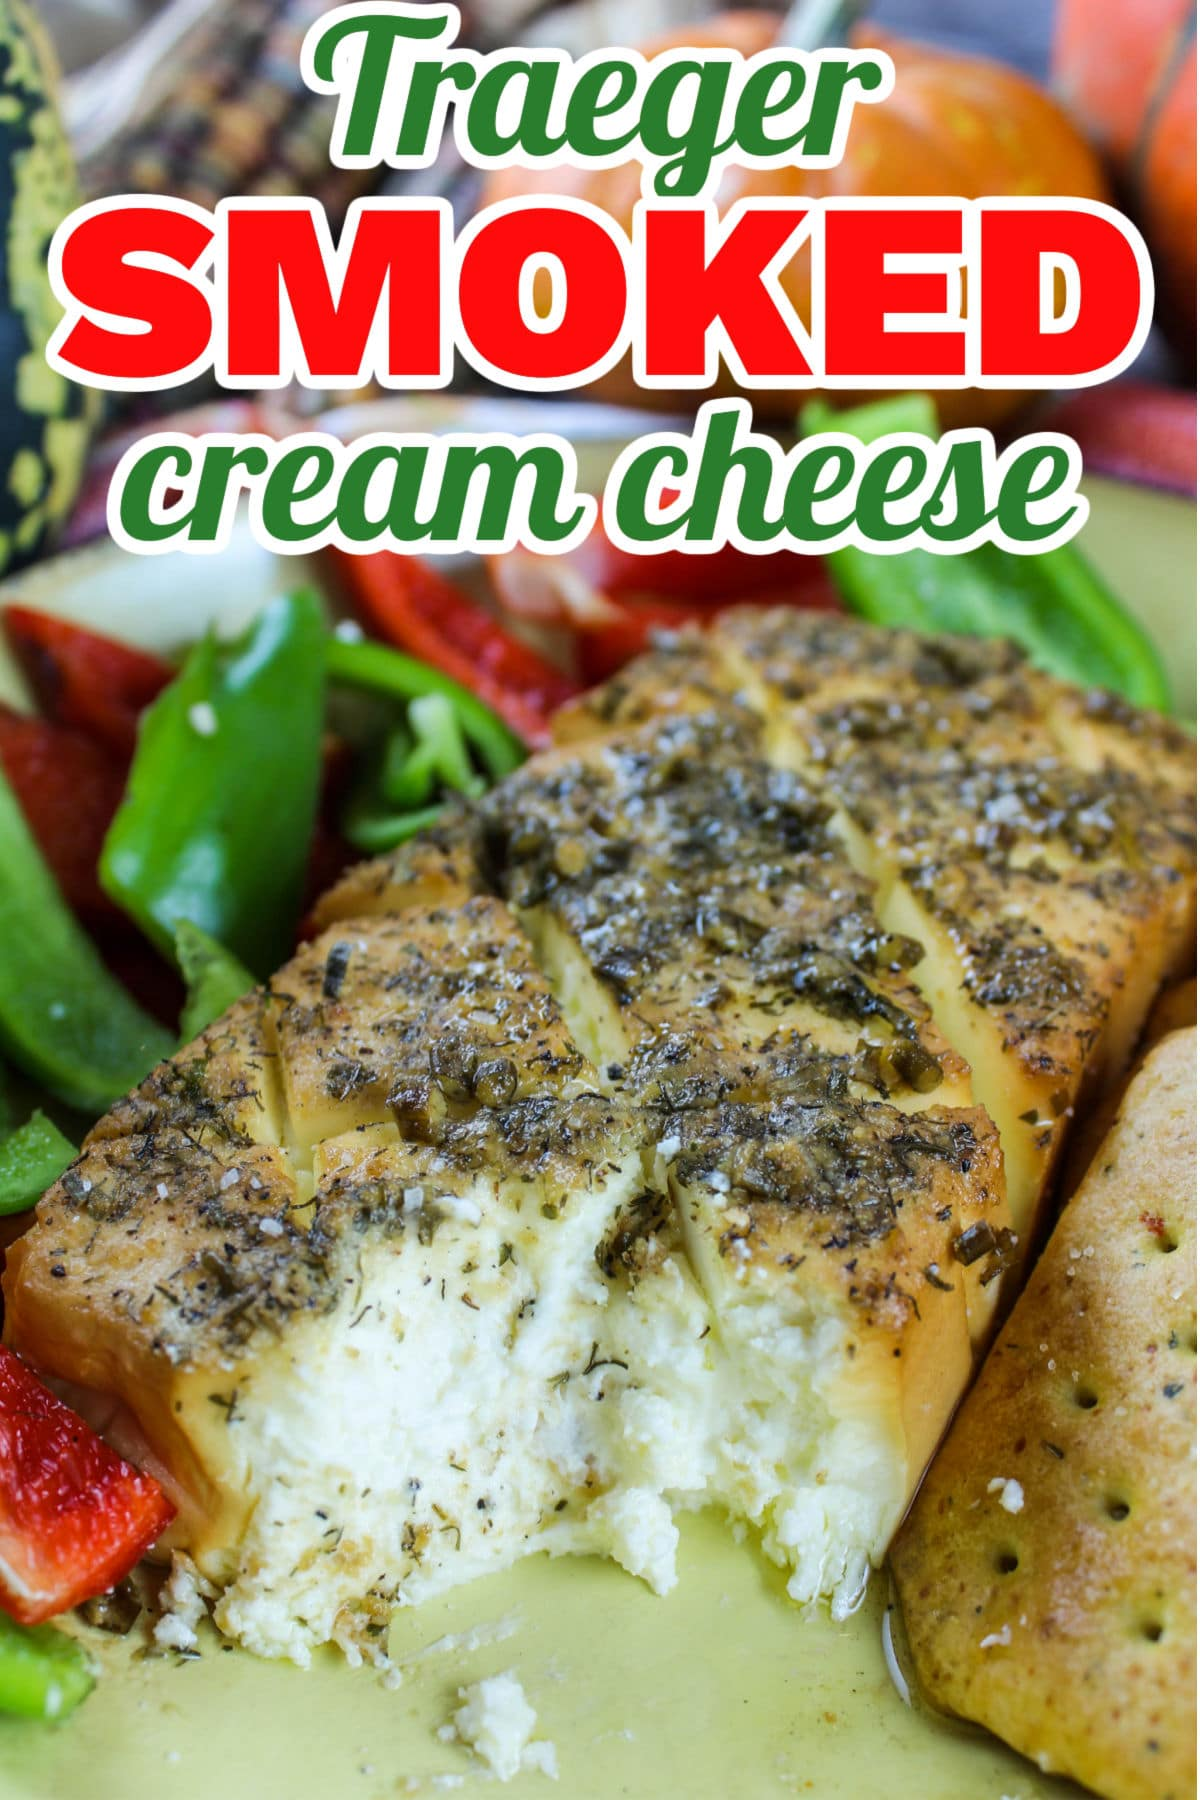 Smoked cream cheese is the appetizer you never knew you needed! It's so simple and so delicious! I made a savory and a dessert option and still can't decide which I like better! They're also good hot or cold. Perfect appetizer for any afternoon of grilling. via @foodhussy